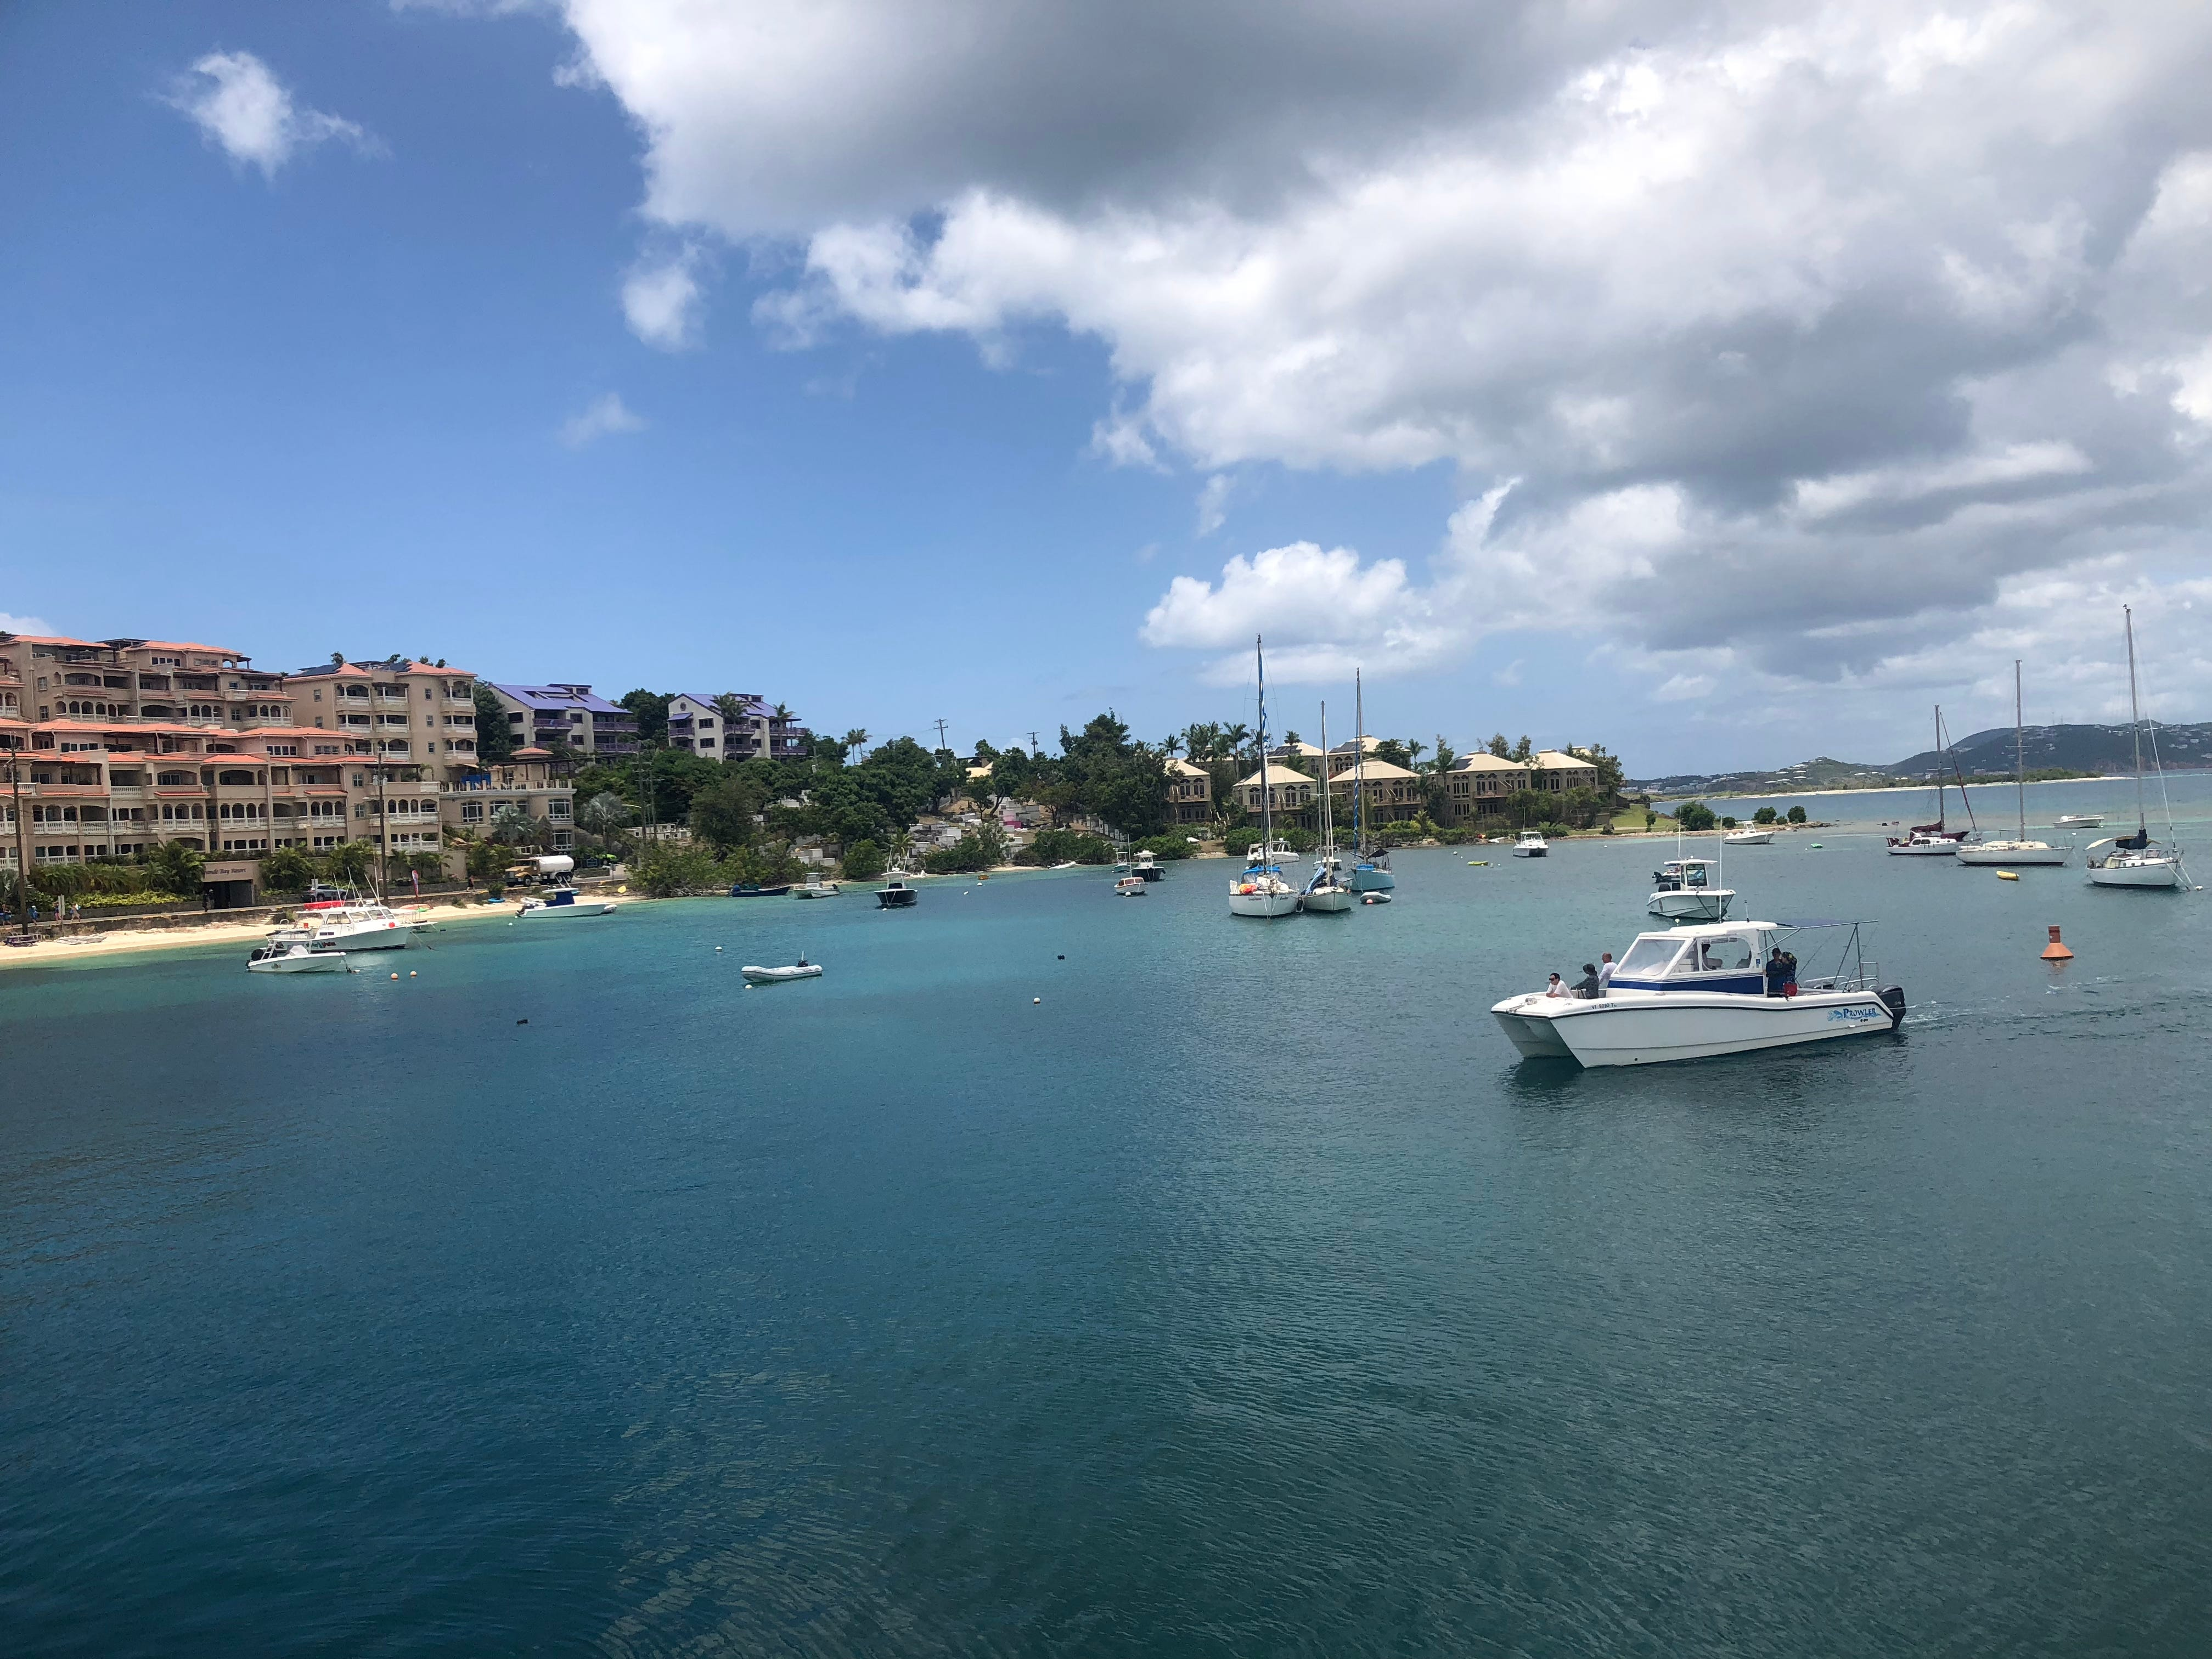 A year after Hurricane Irma battered the island, Cruz Bay in St. John is steadying recovering from the devastating effects of the storm.